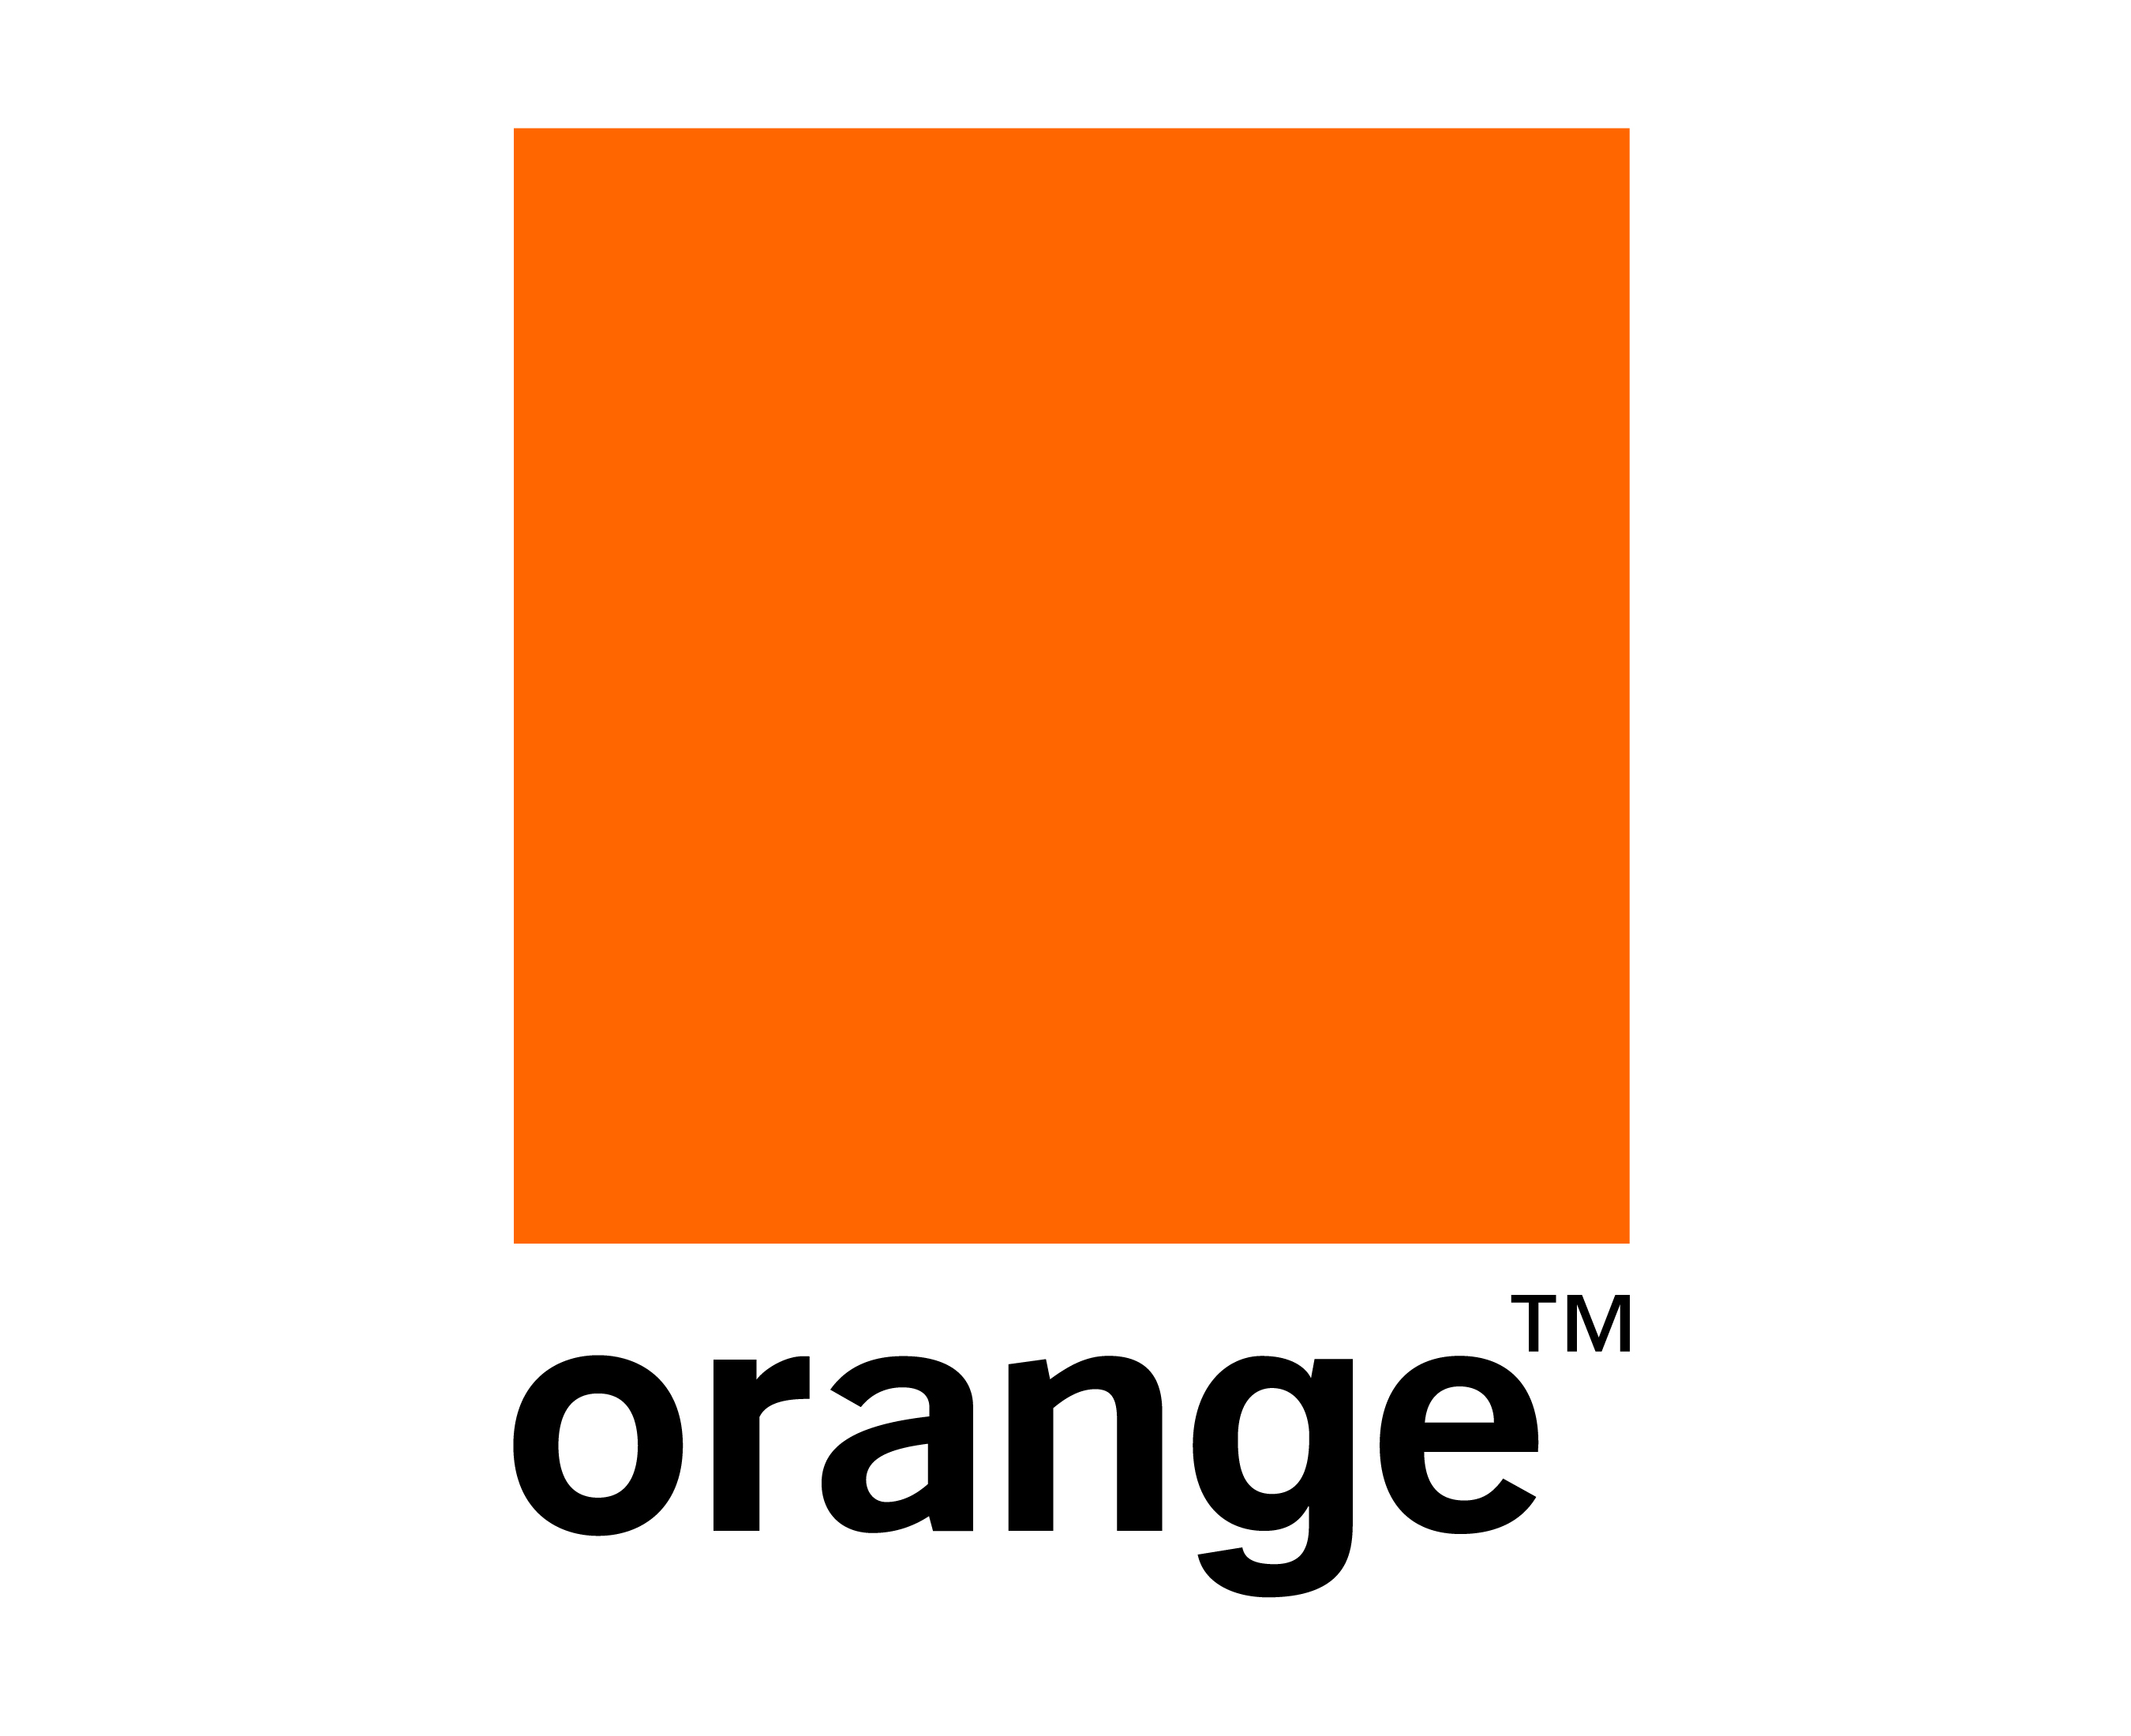 logo orange histoire image de symbole et embl me. Black Bedroom Furniture Sets. Home Design Ideas